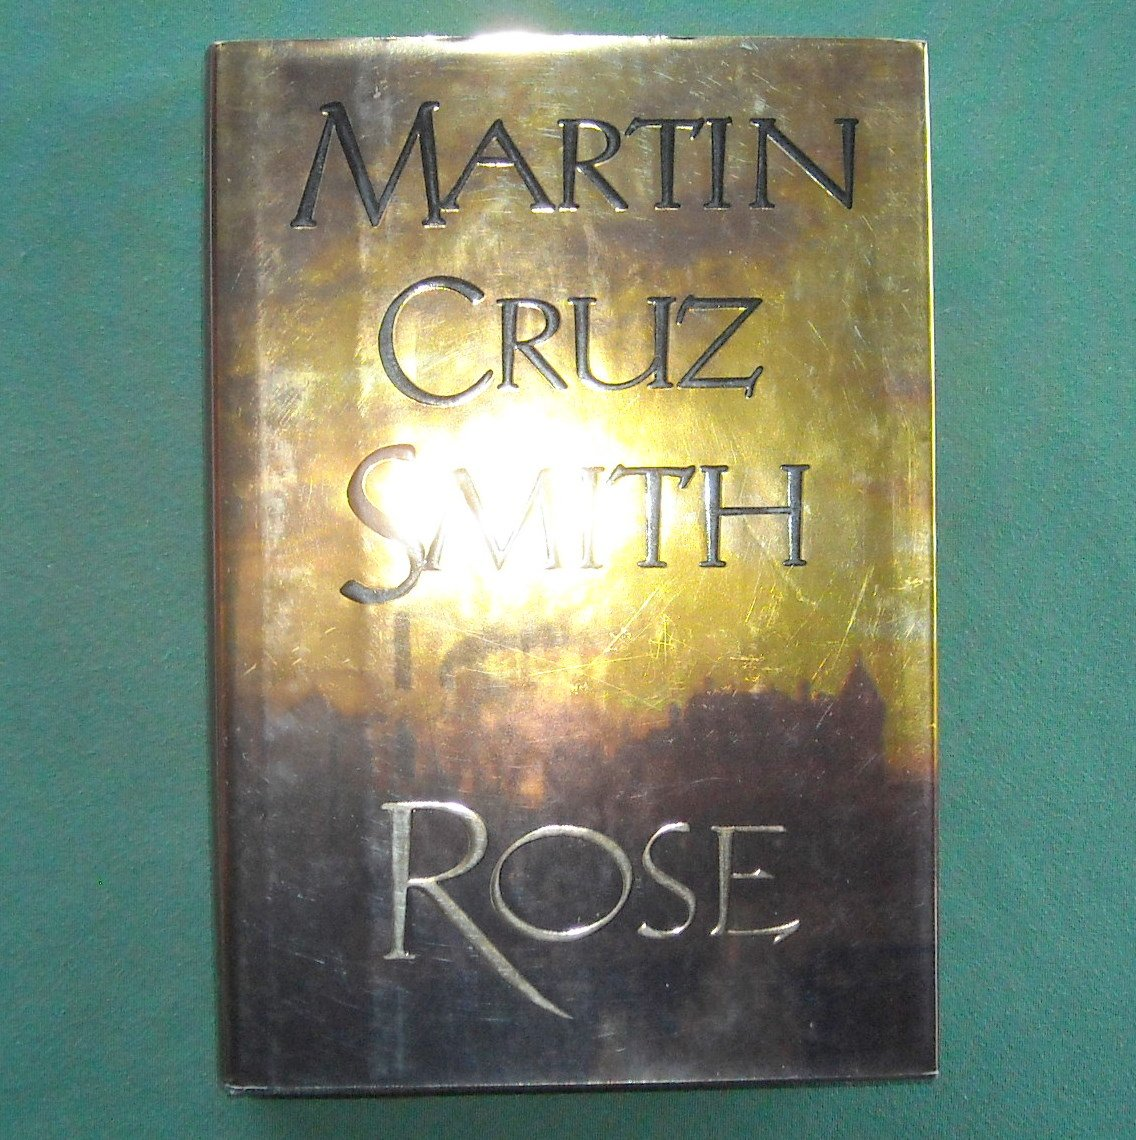 Martin Cruz Smith Rose hardcover ISBN 0679426612